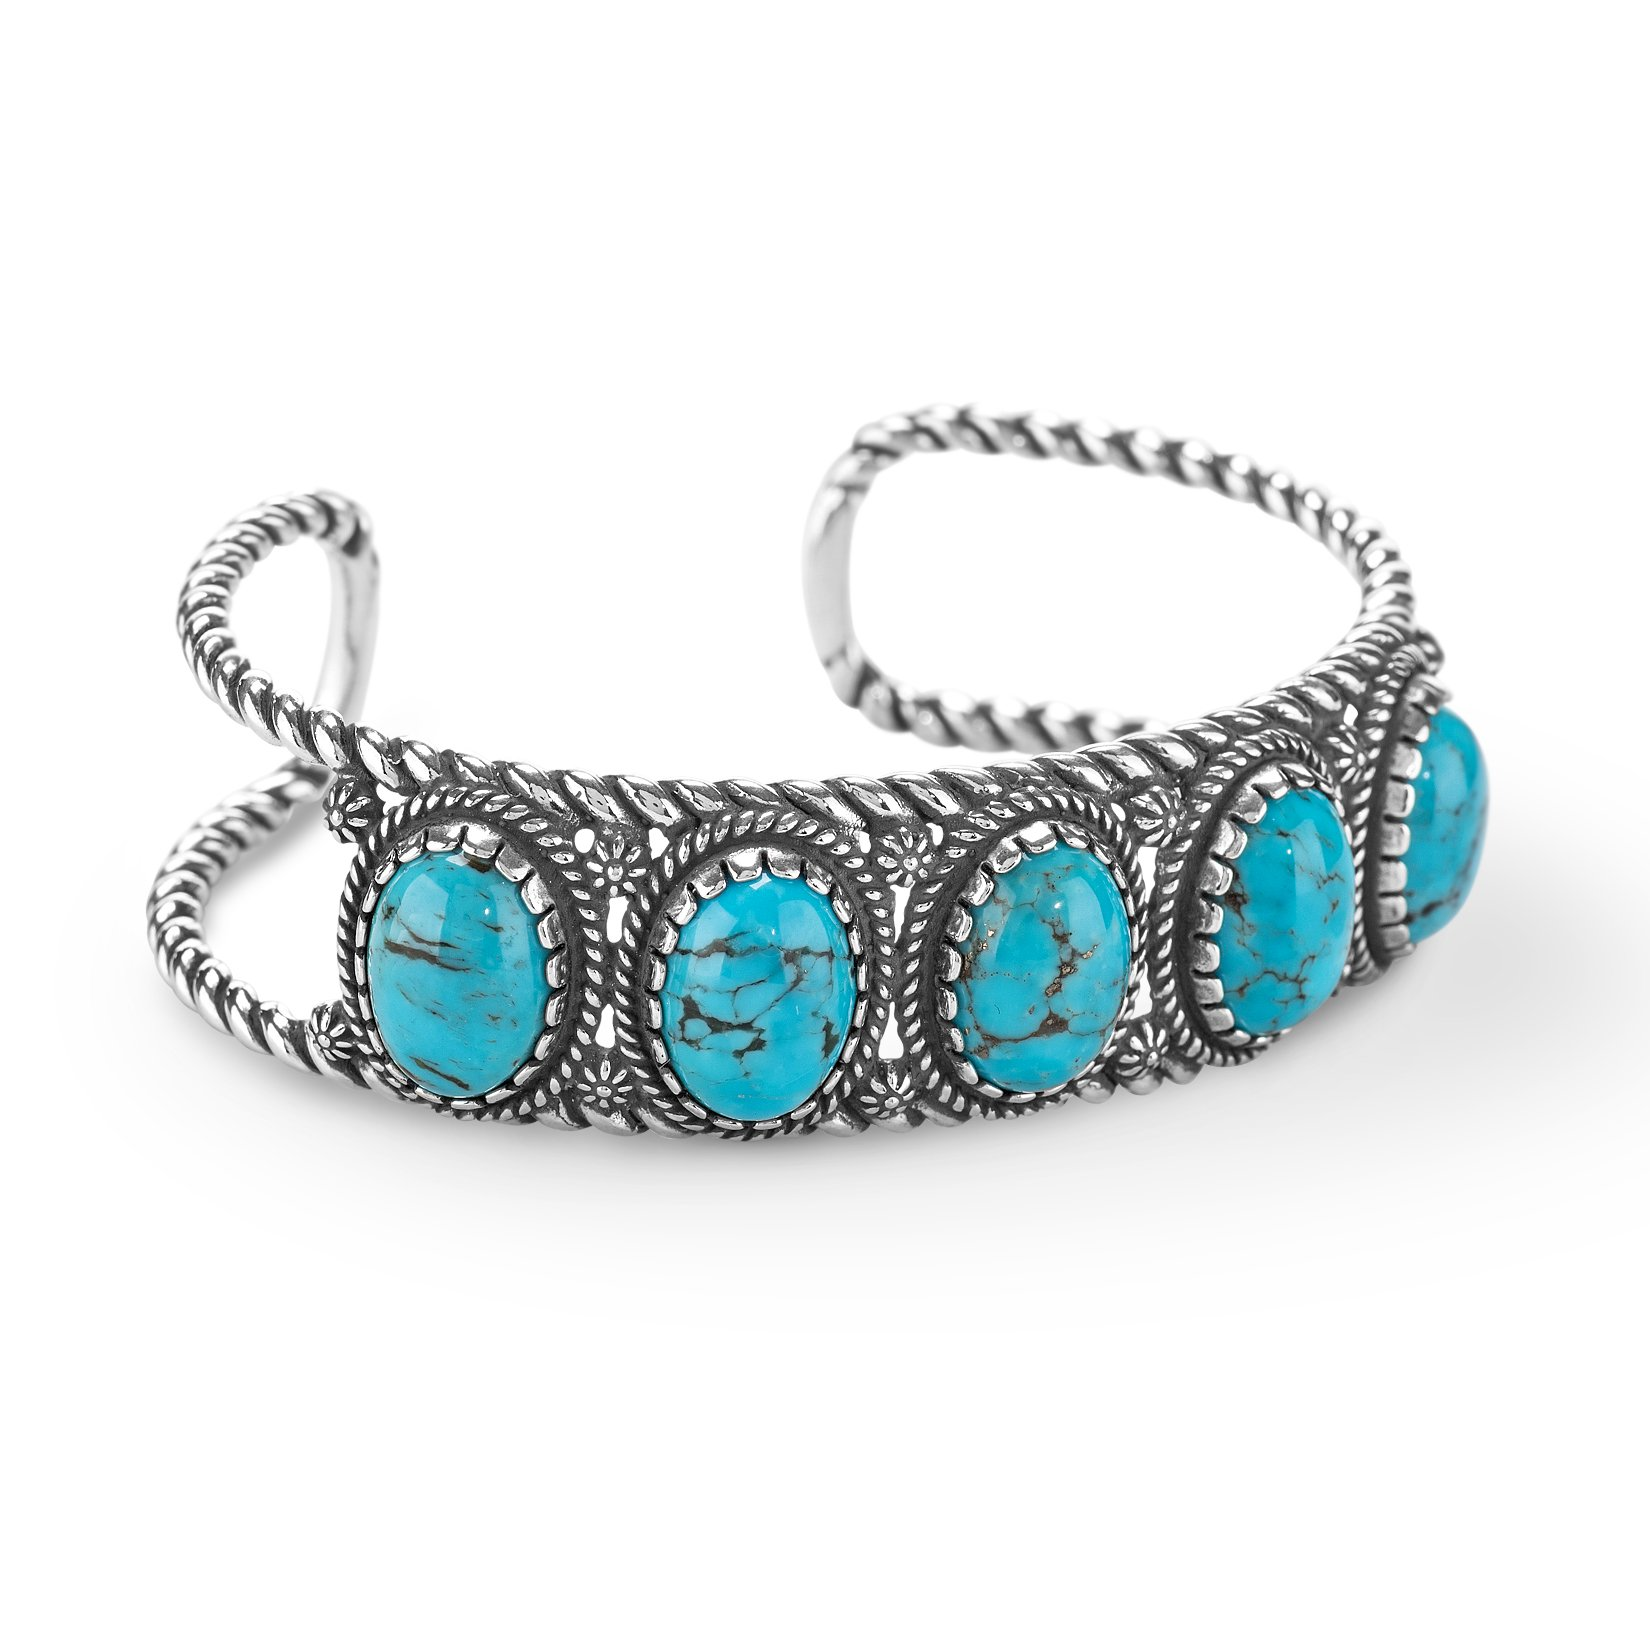 American West Five Stone Sterling Silver Turquoise Cuff Bracelet by American West